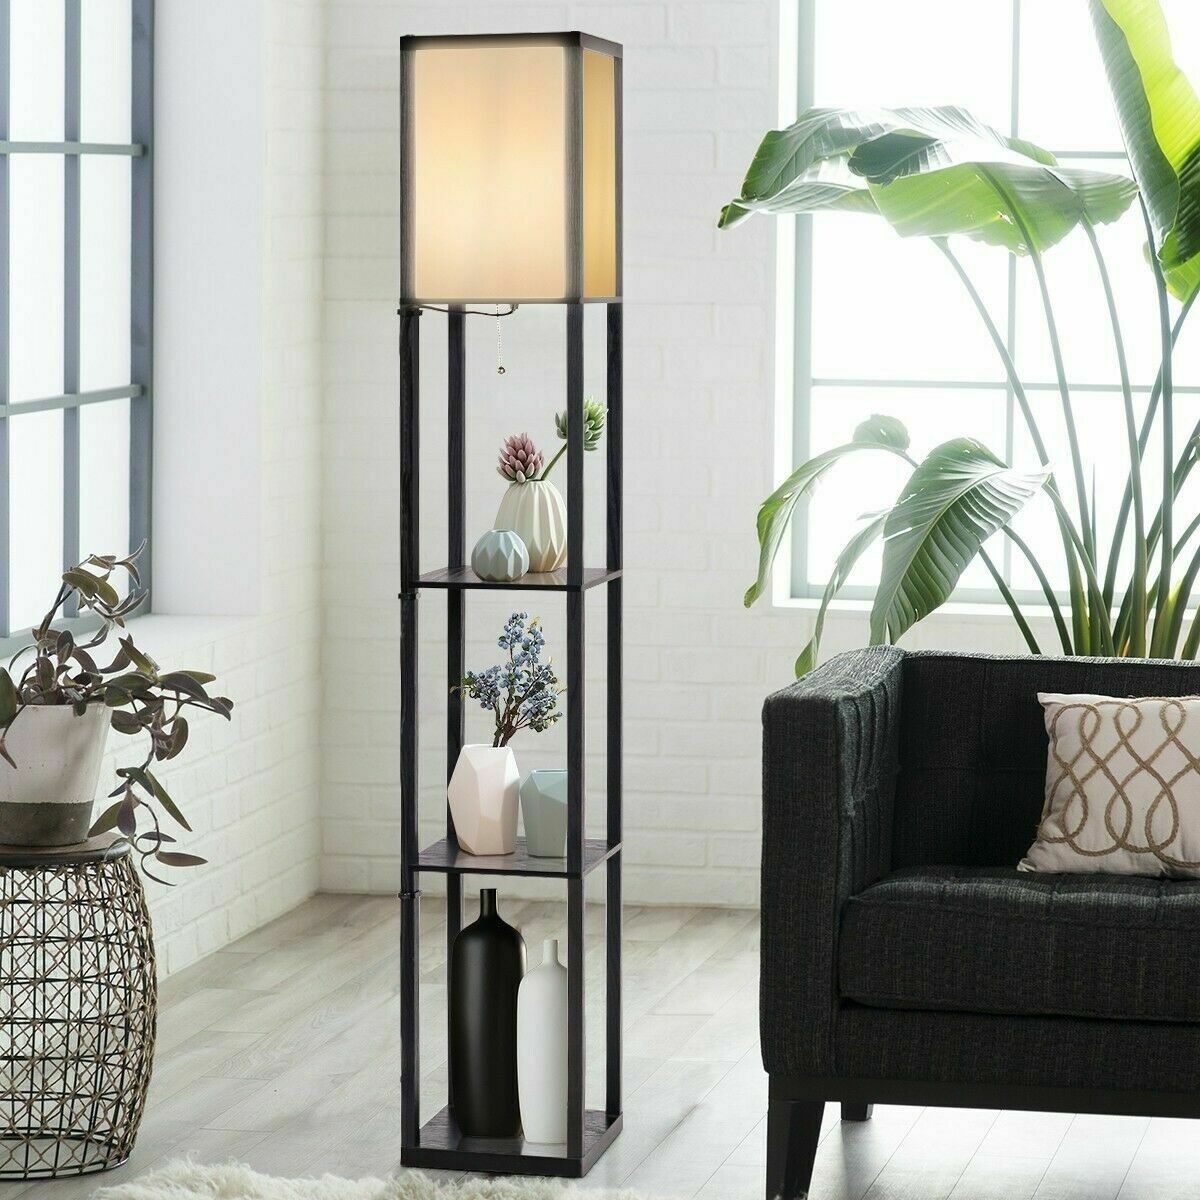 Wood Shelf Floor Lamp LED Light W/Storage Shelves For Living Bedroom